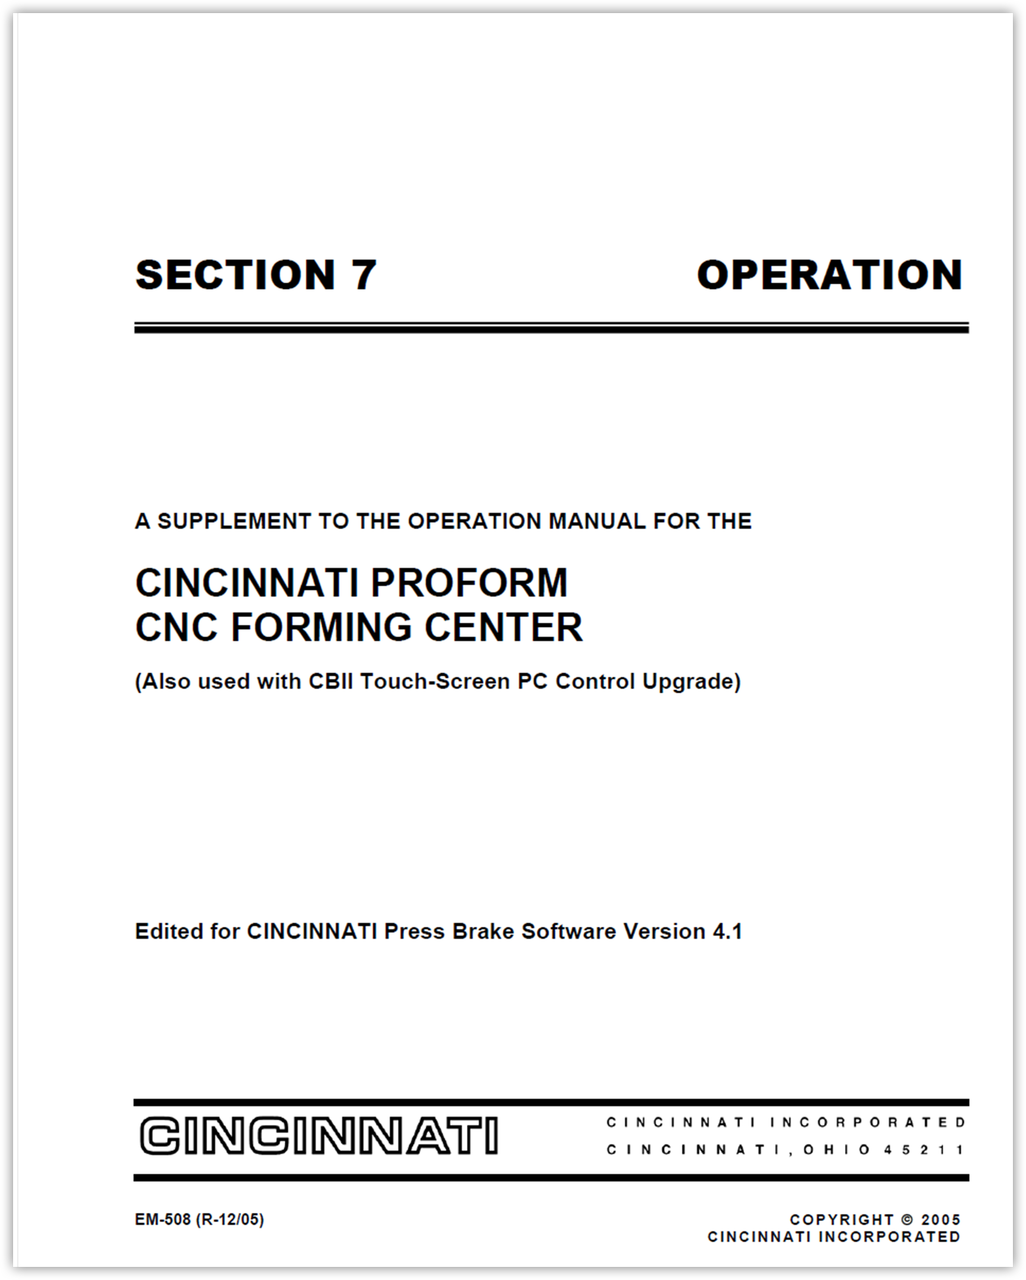 EM-508 (V41_R-12-05) SECTION 7 OPERATION PROFORM PC Control Supplement Manual